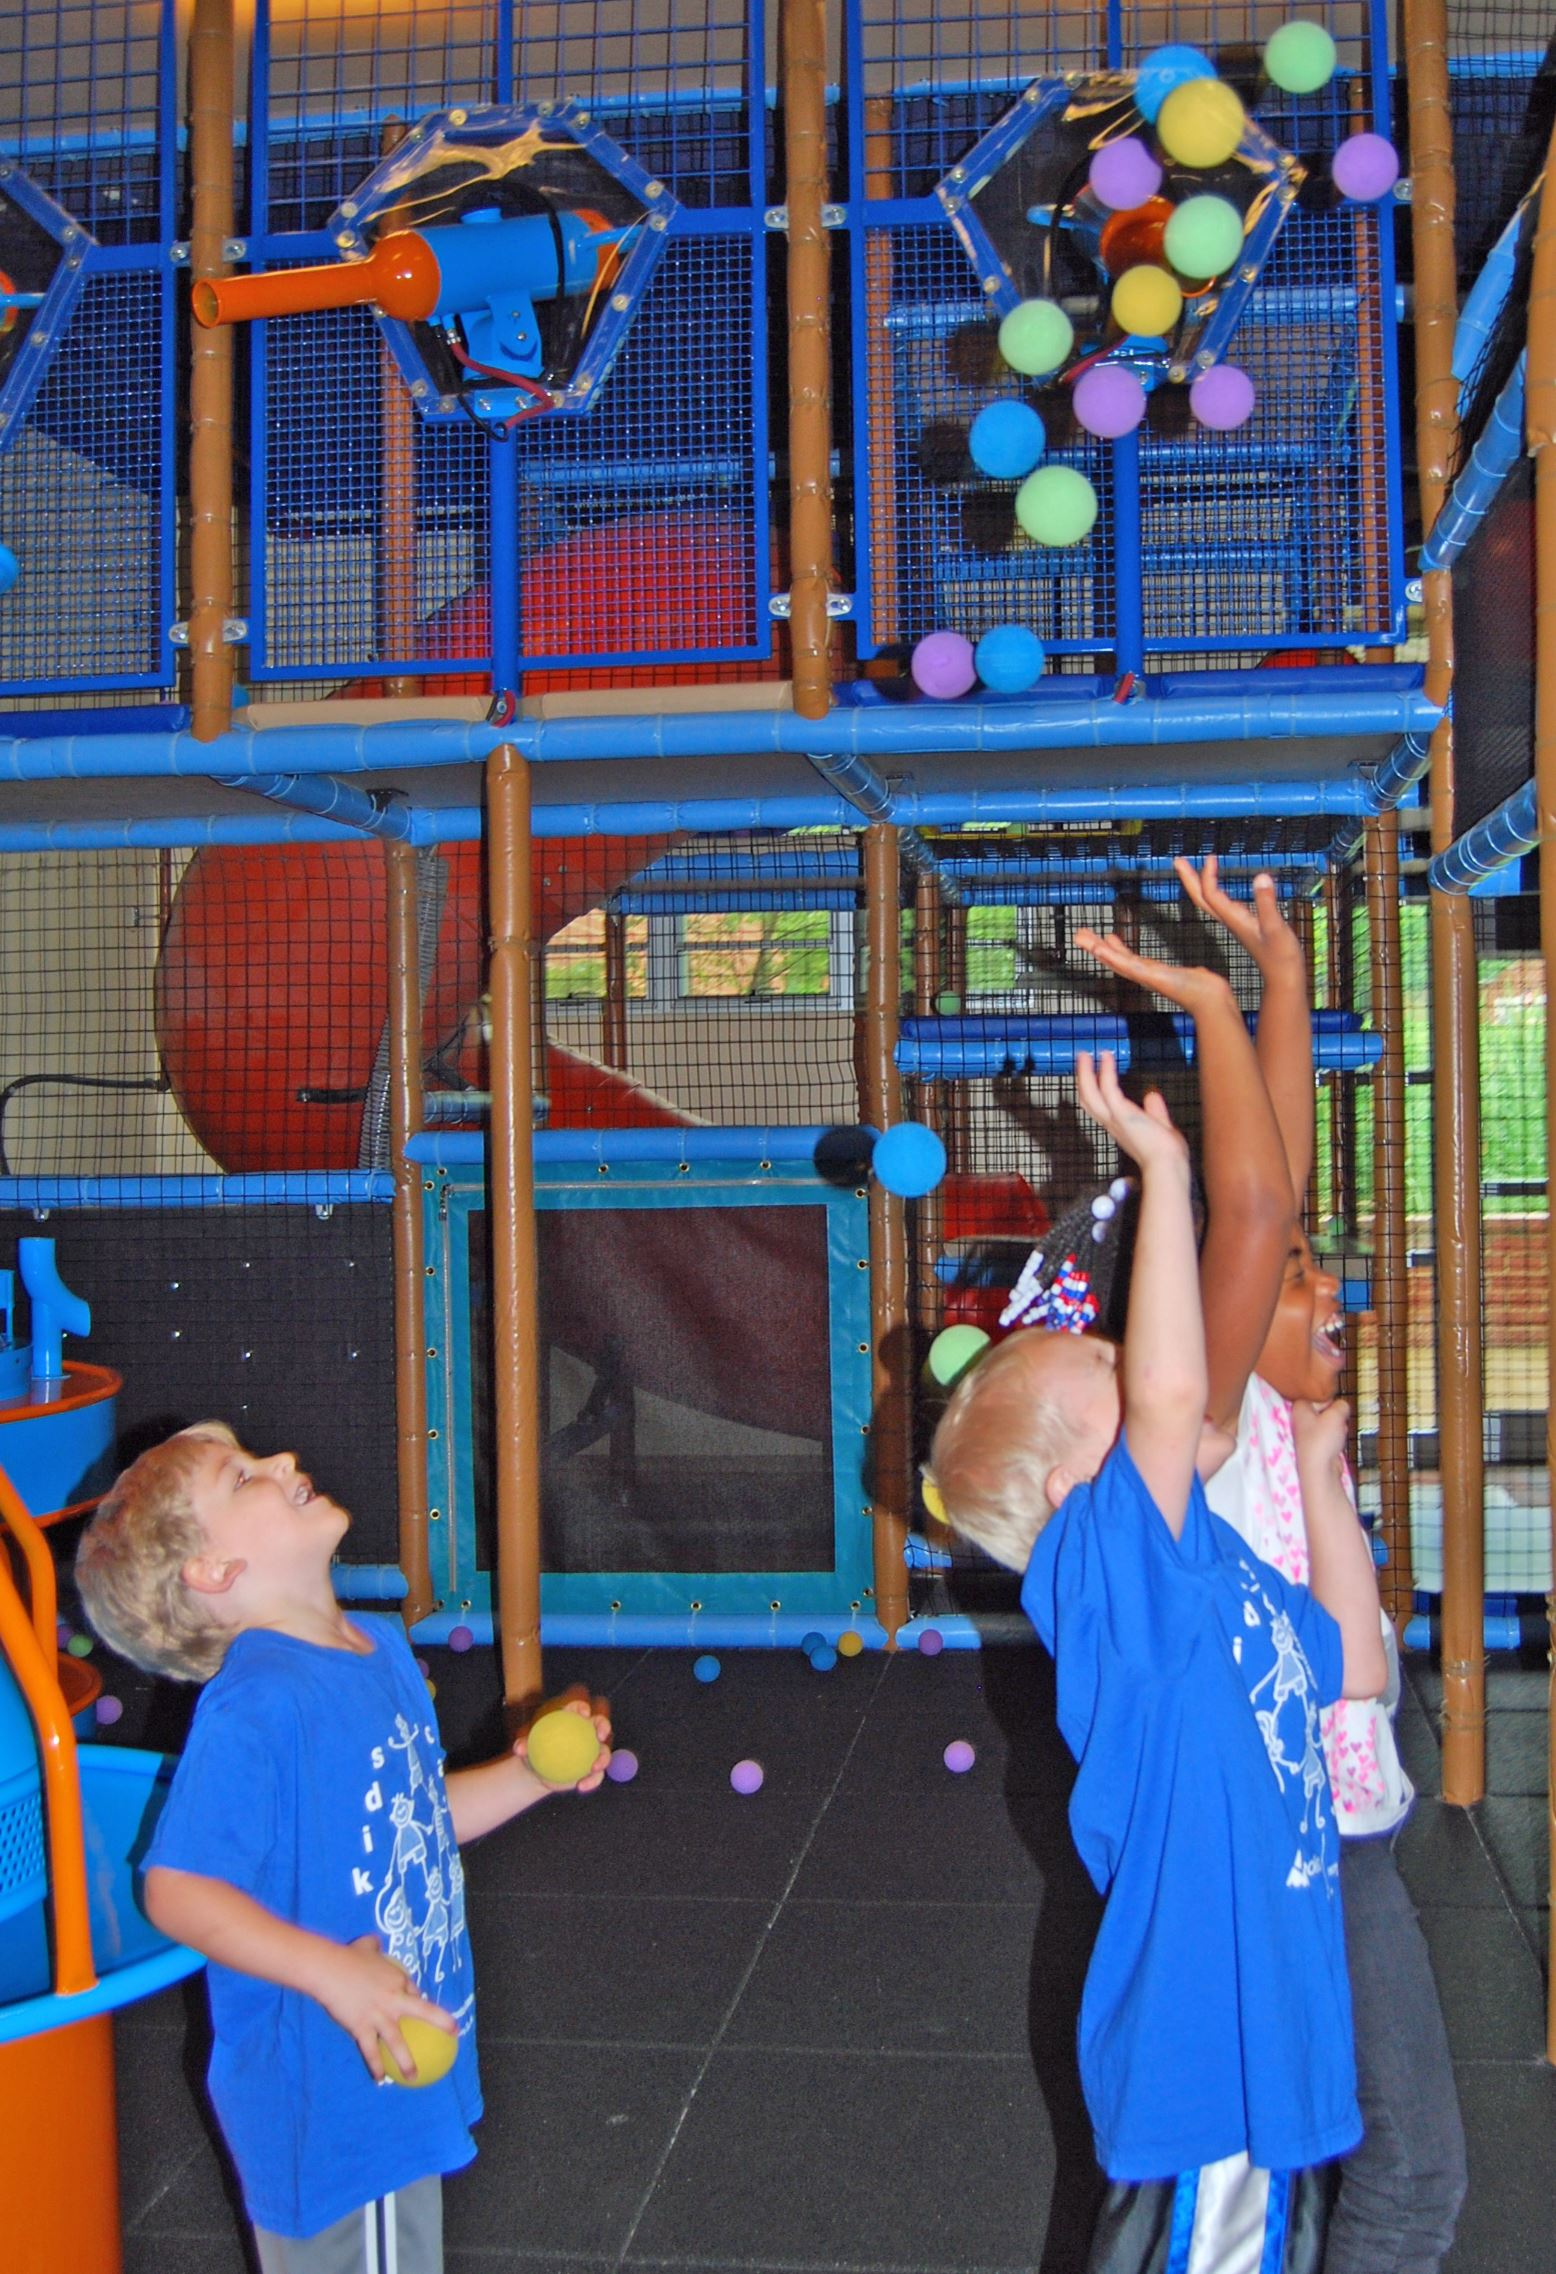 Kids Playing in Indoor Playground with Small Colorful Balls